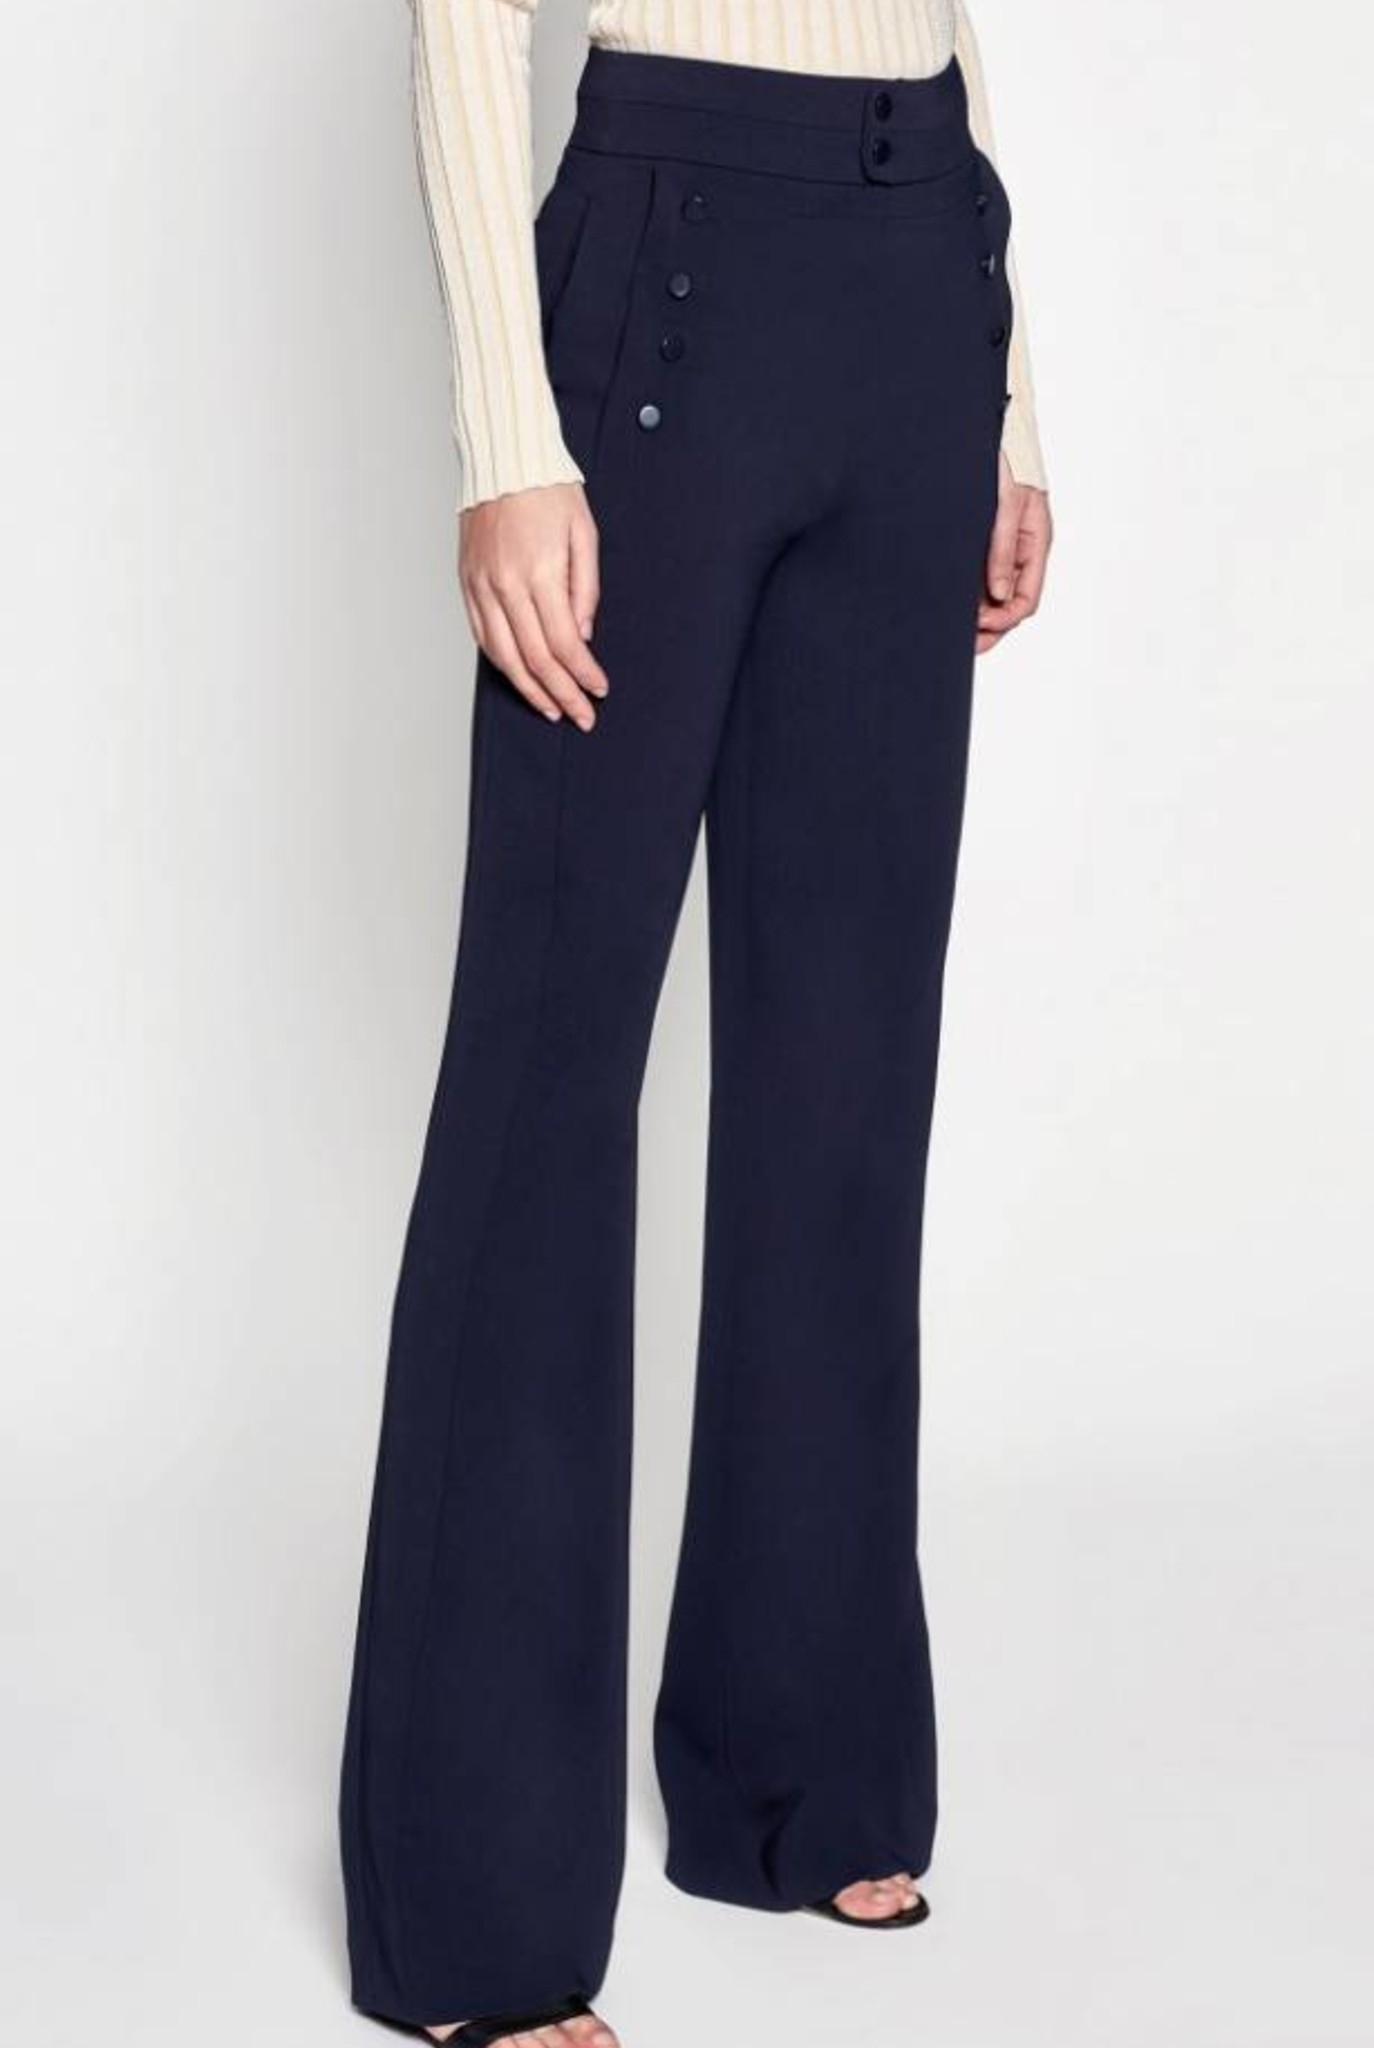 Andrae trouser eclipse